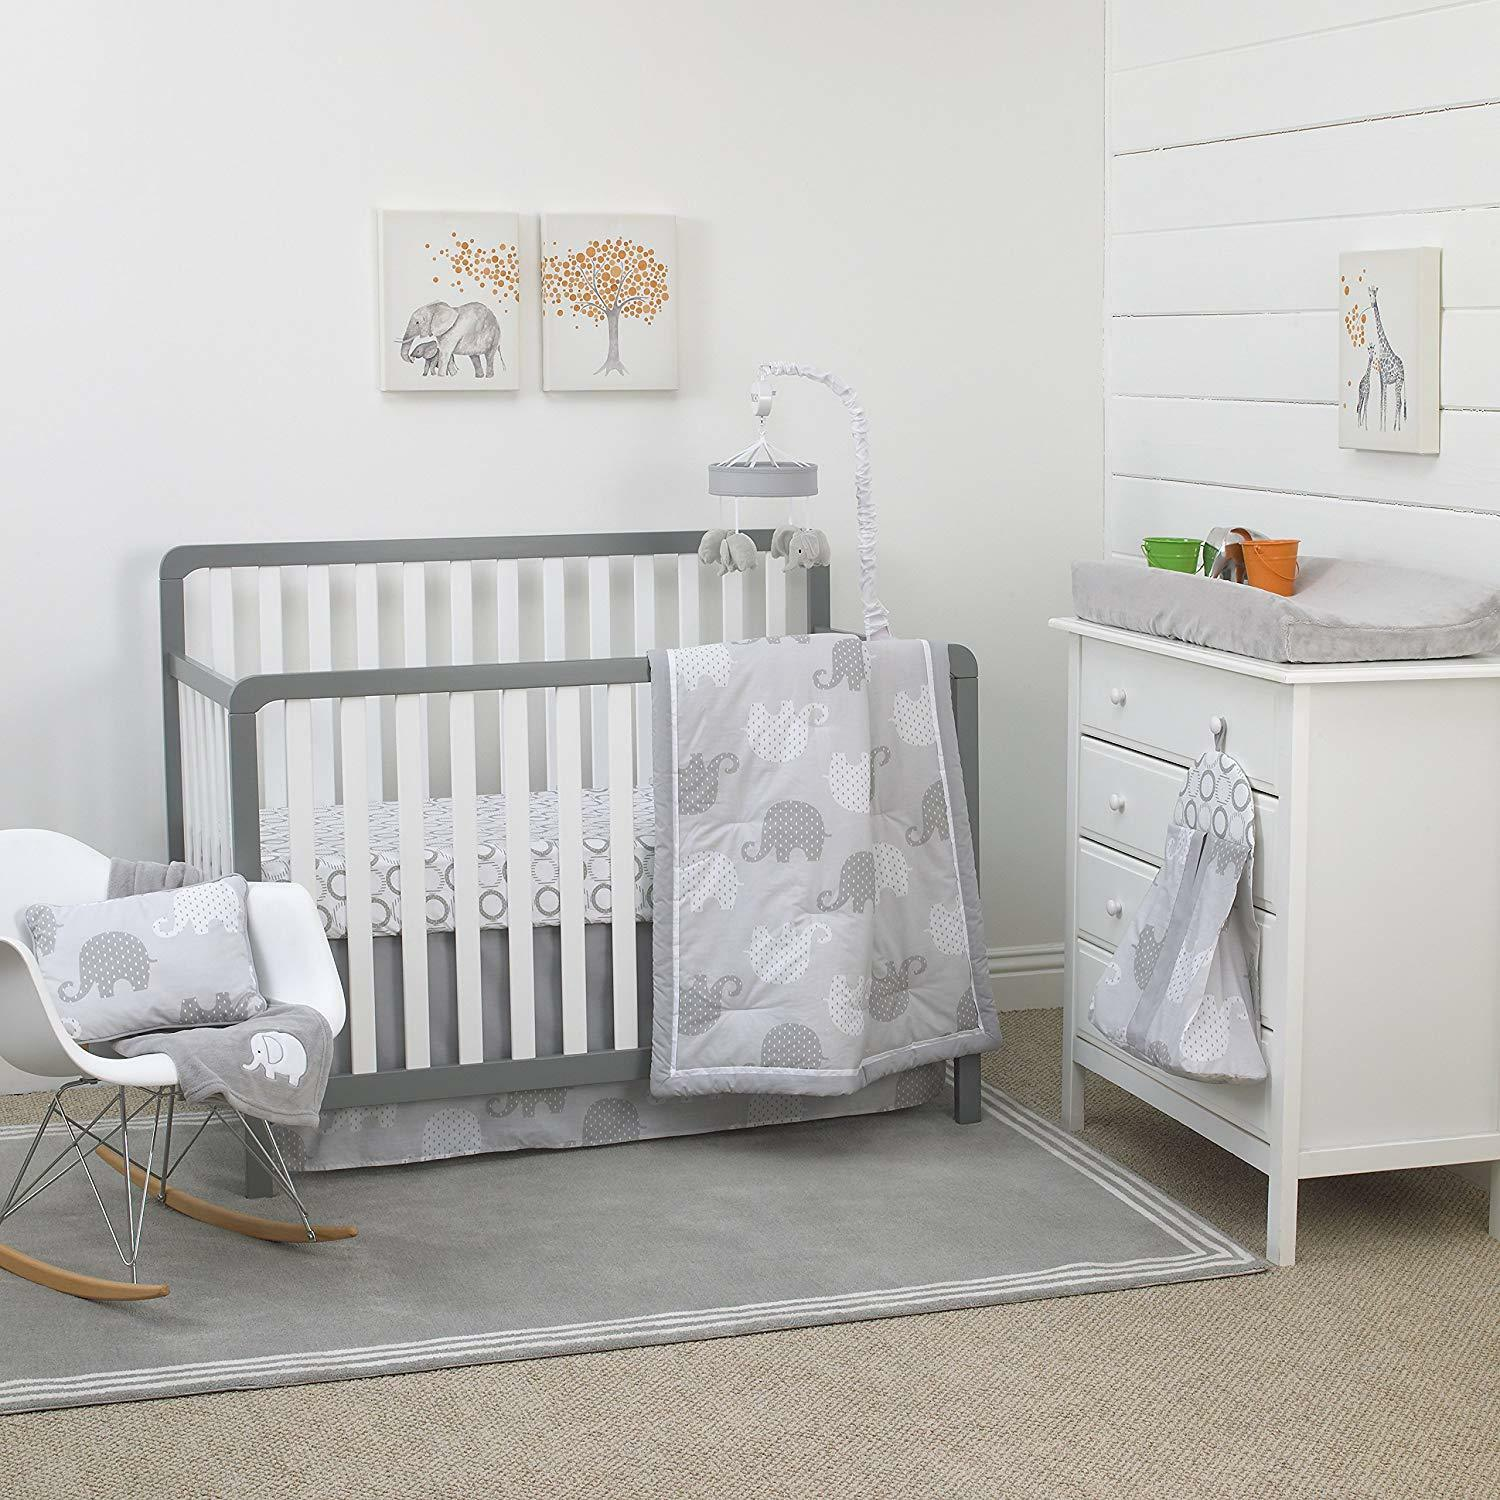 NoJo Elephant 8-Piece Nursery Crib Bedding Set, Grey/White/C